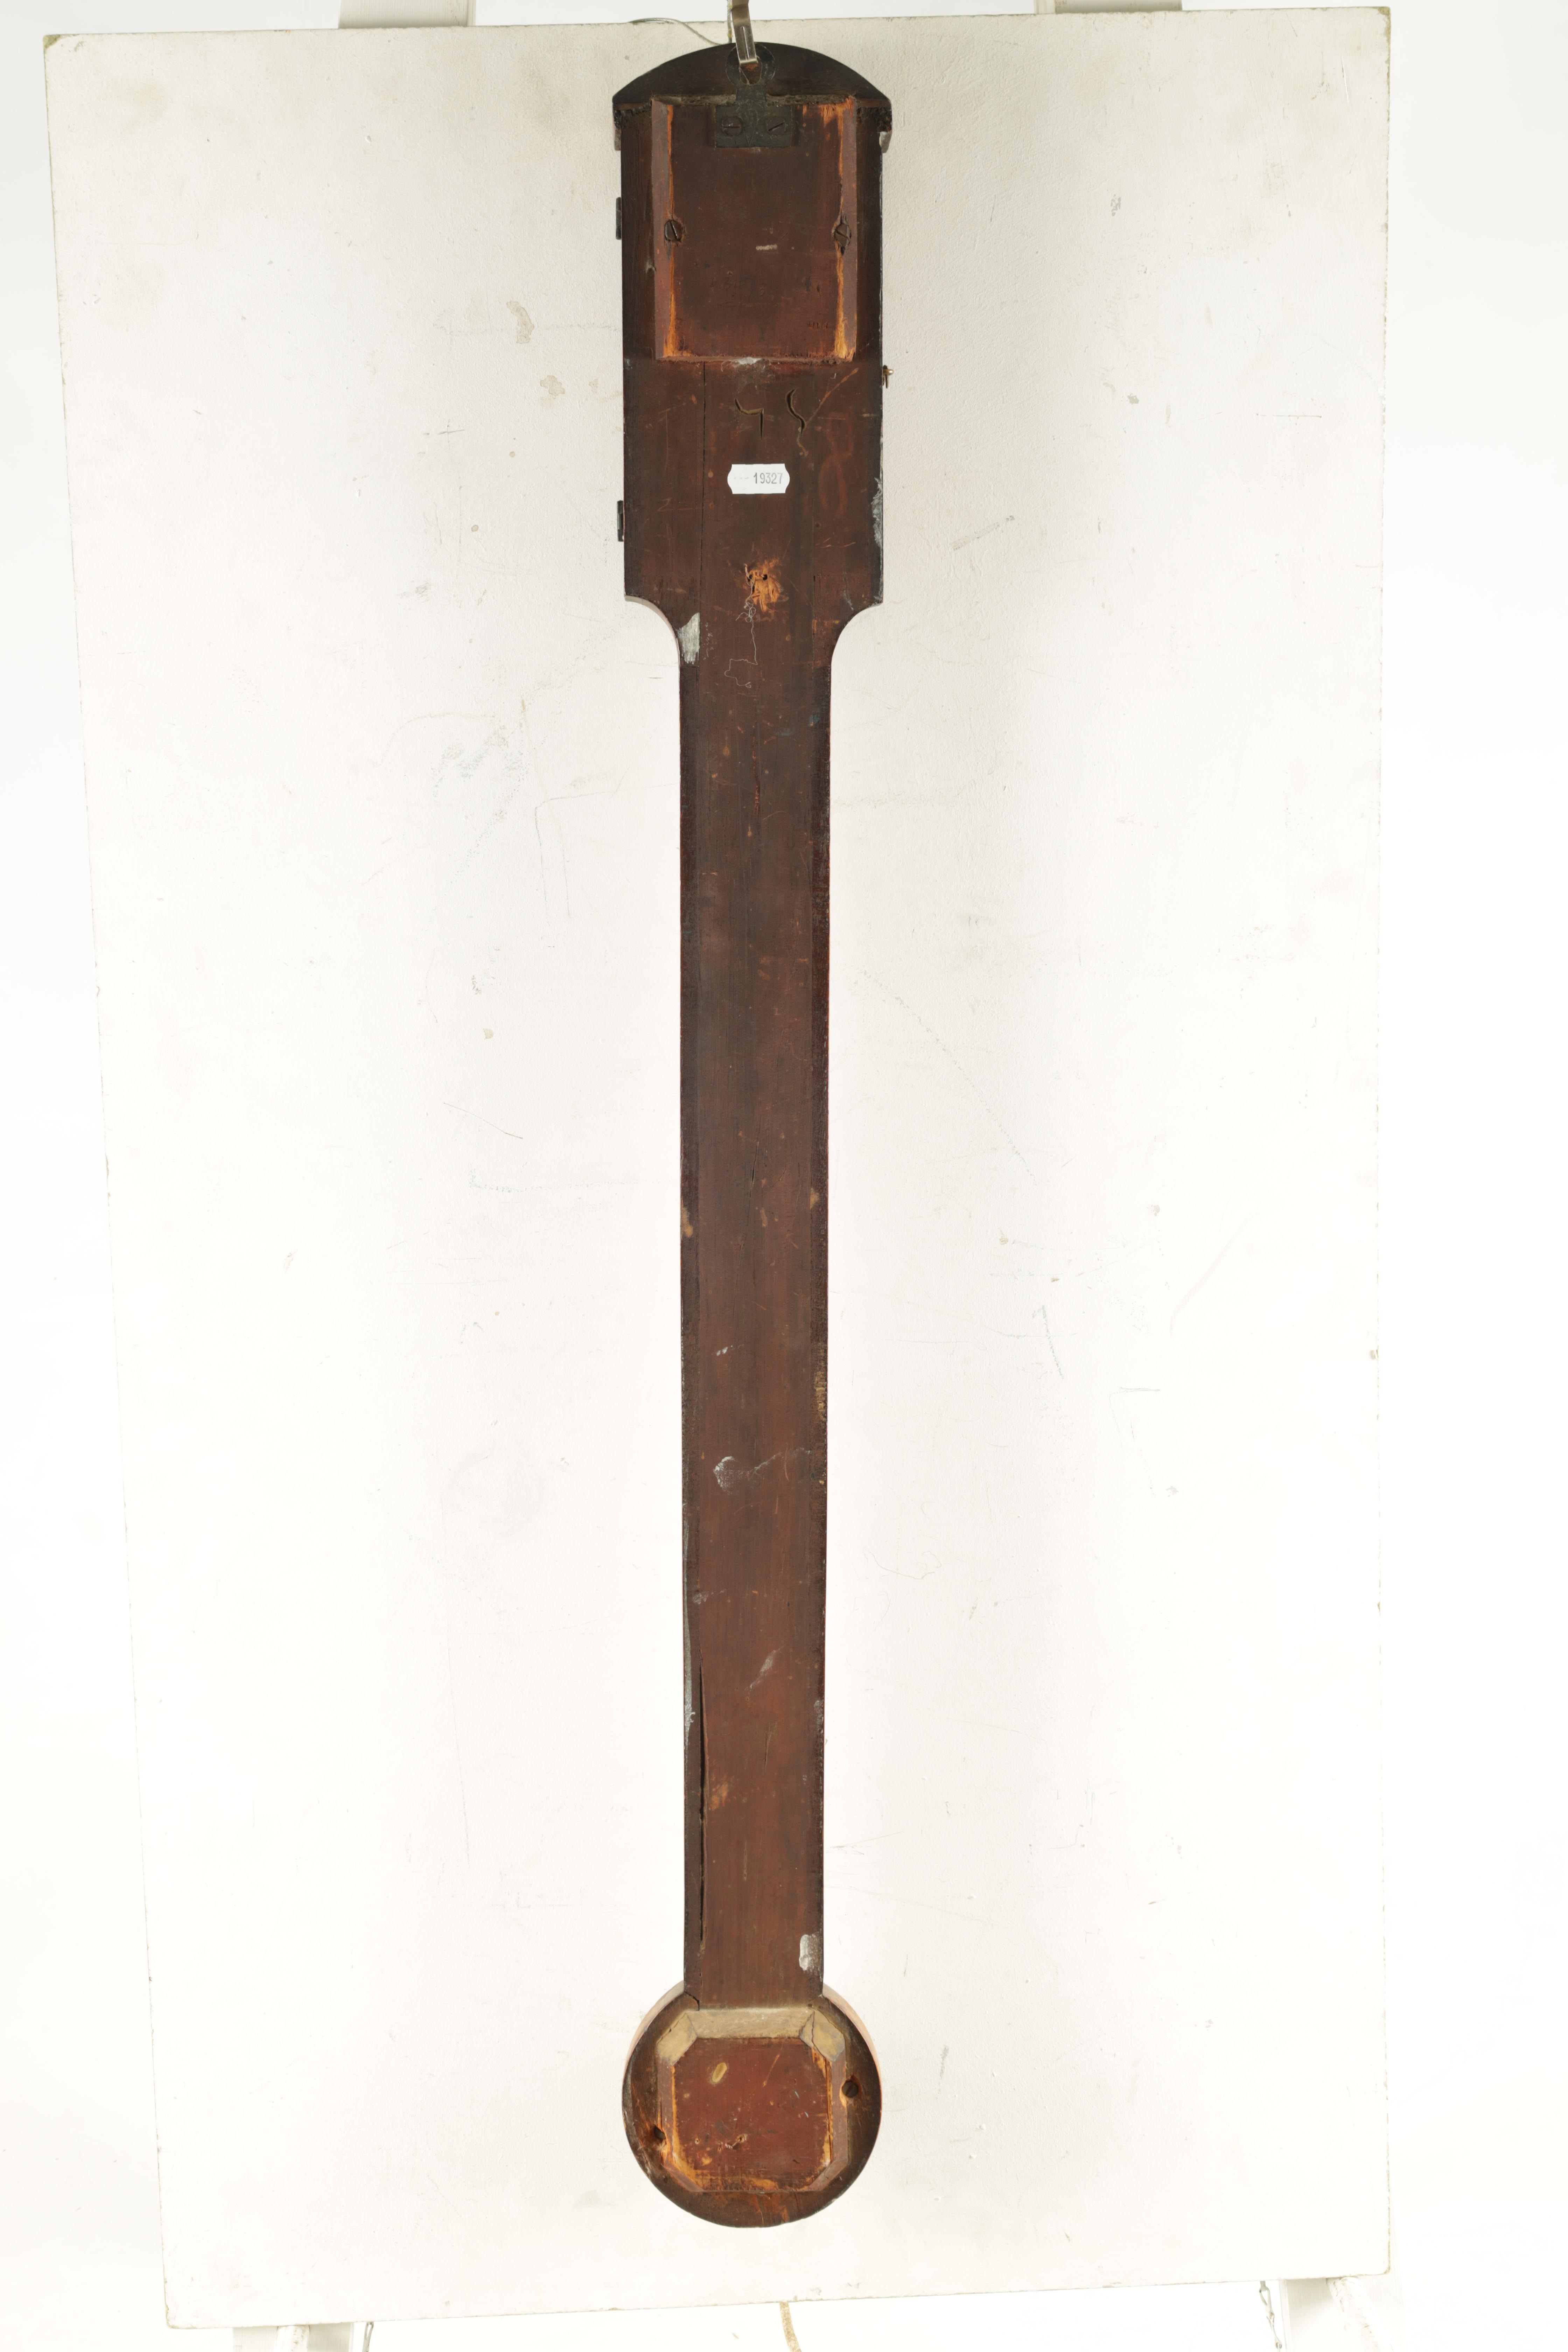 F. BOVERIL, 9 EYRE STREET, HILL, LONDON A GEORGE III MAHOGANY STICK BAROMETER the case with arched - Image 6 of 6